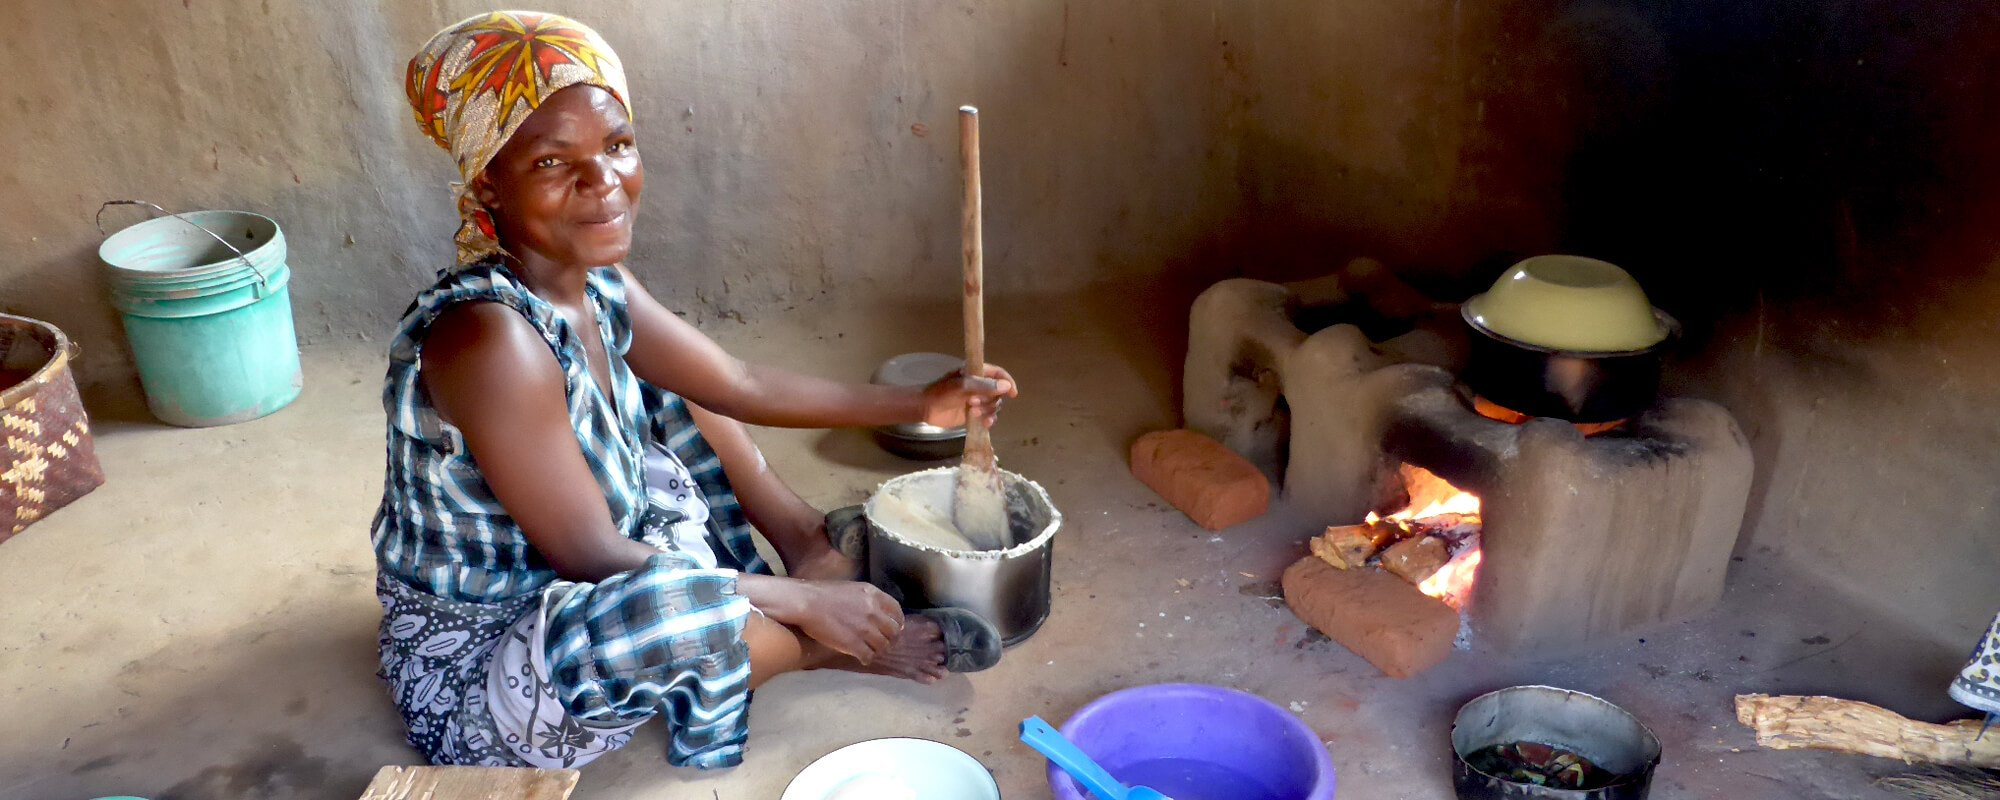 A woman cooks lunch on her Changu Changu moto fuel efficient cookstove in Malawi